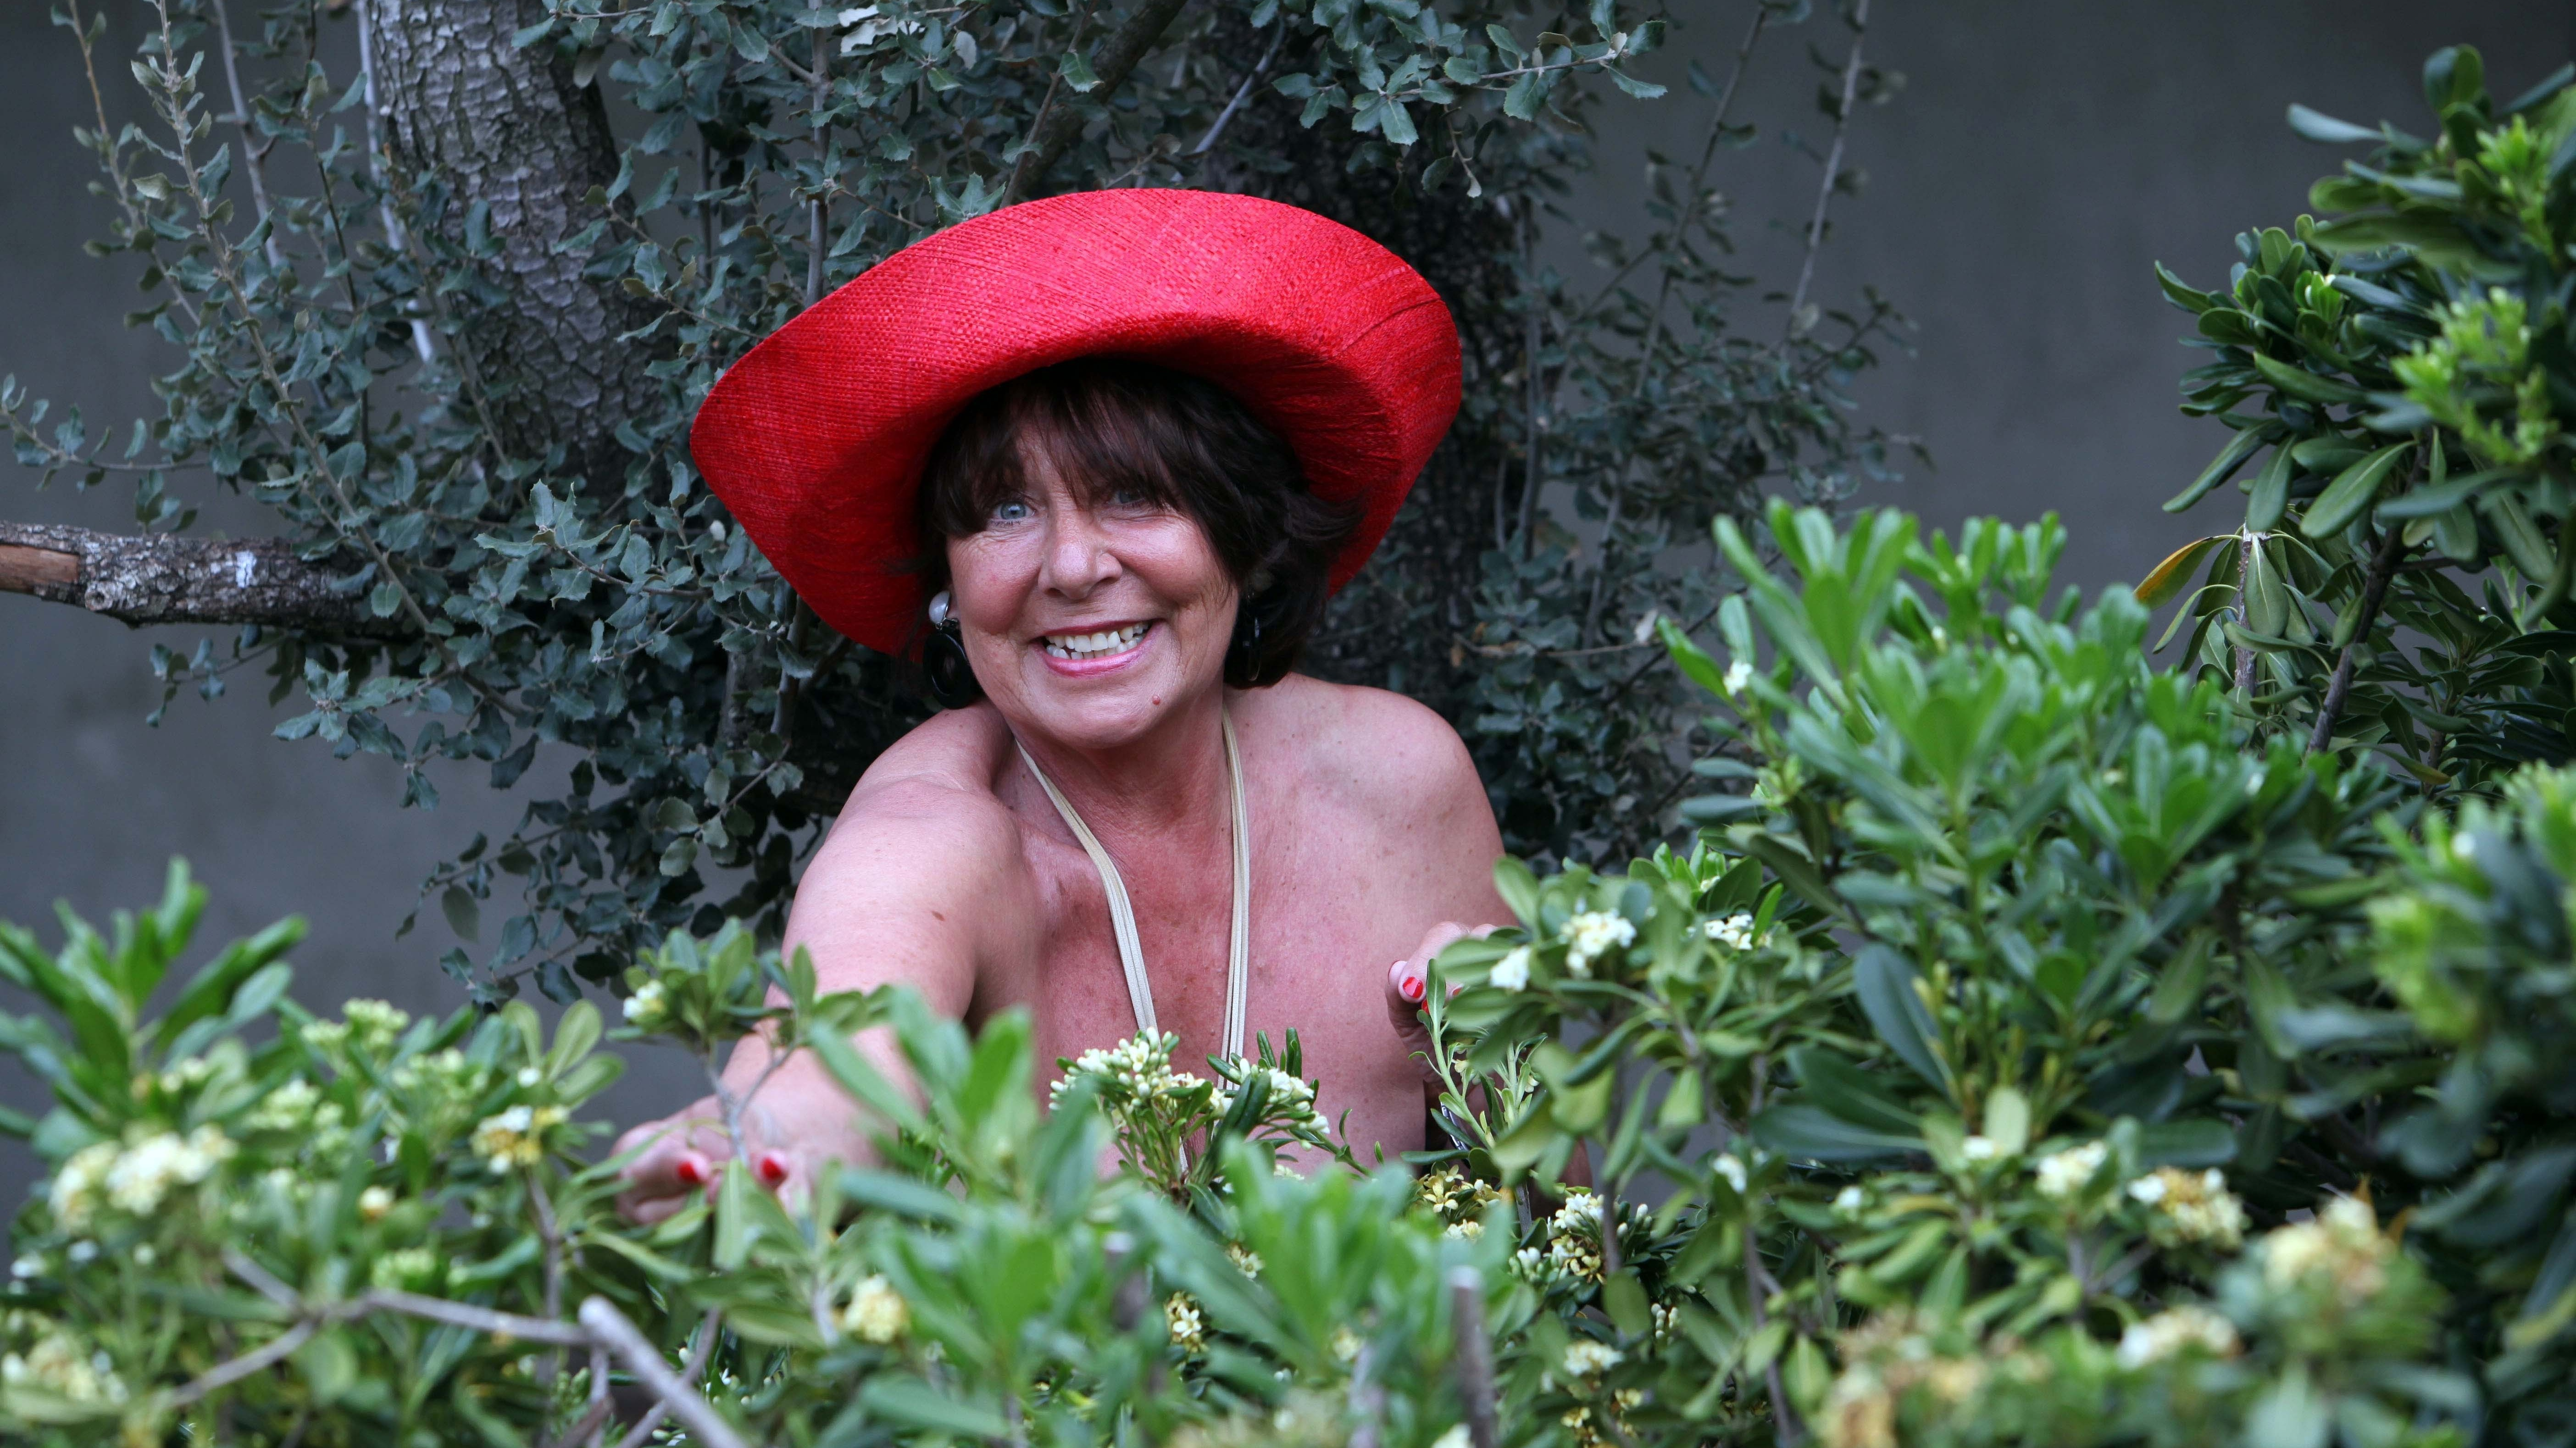 Hoes Abound On World Naked Gardening Day May 2   HuffPost